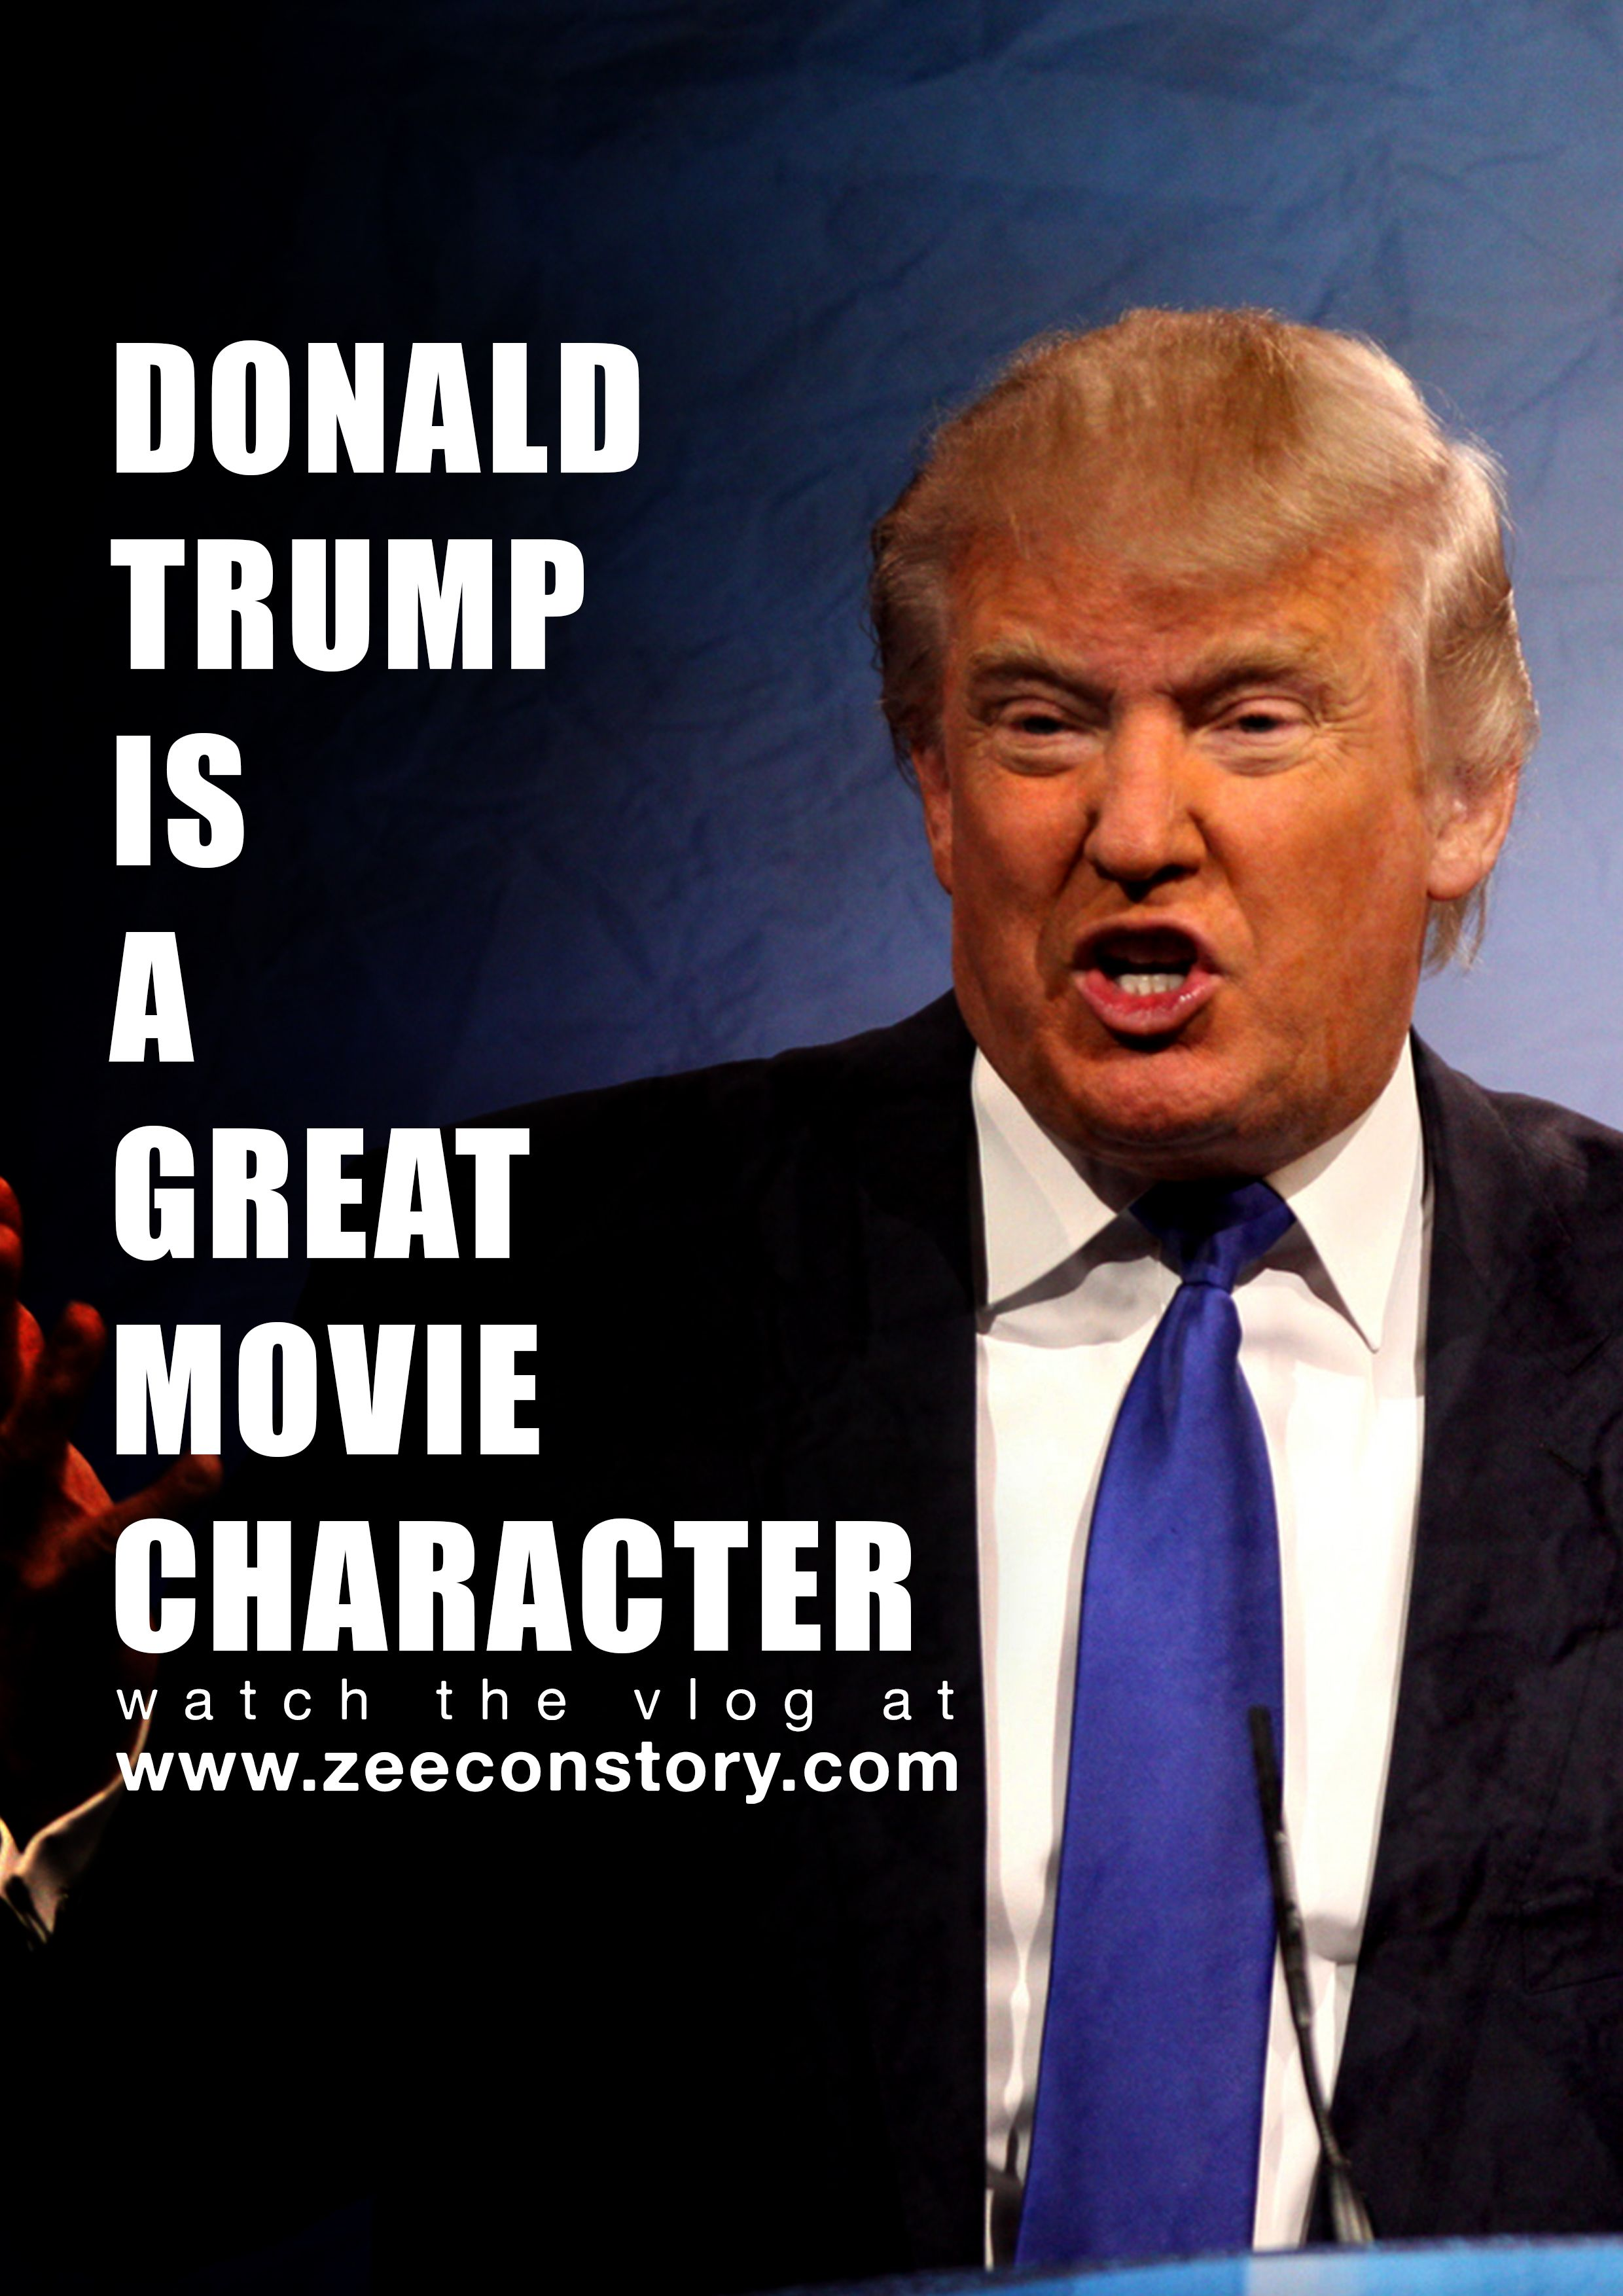 What films did Donald Trump film-making of the President of the USA play in? 9 films with the most famous roles 17